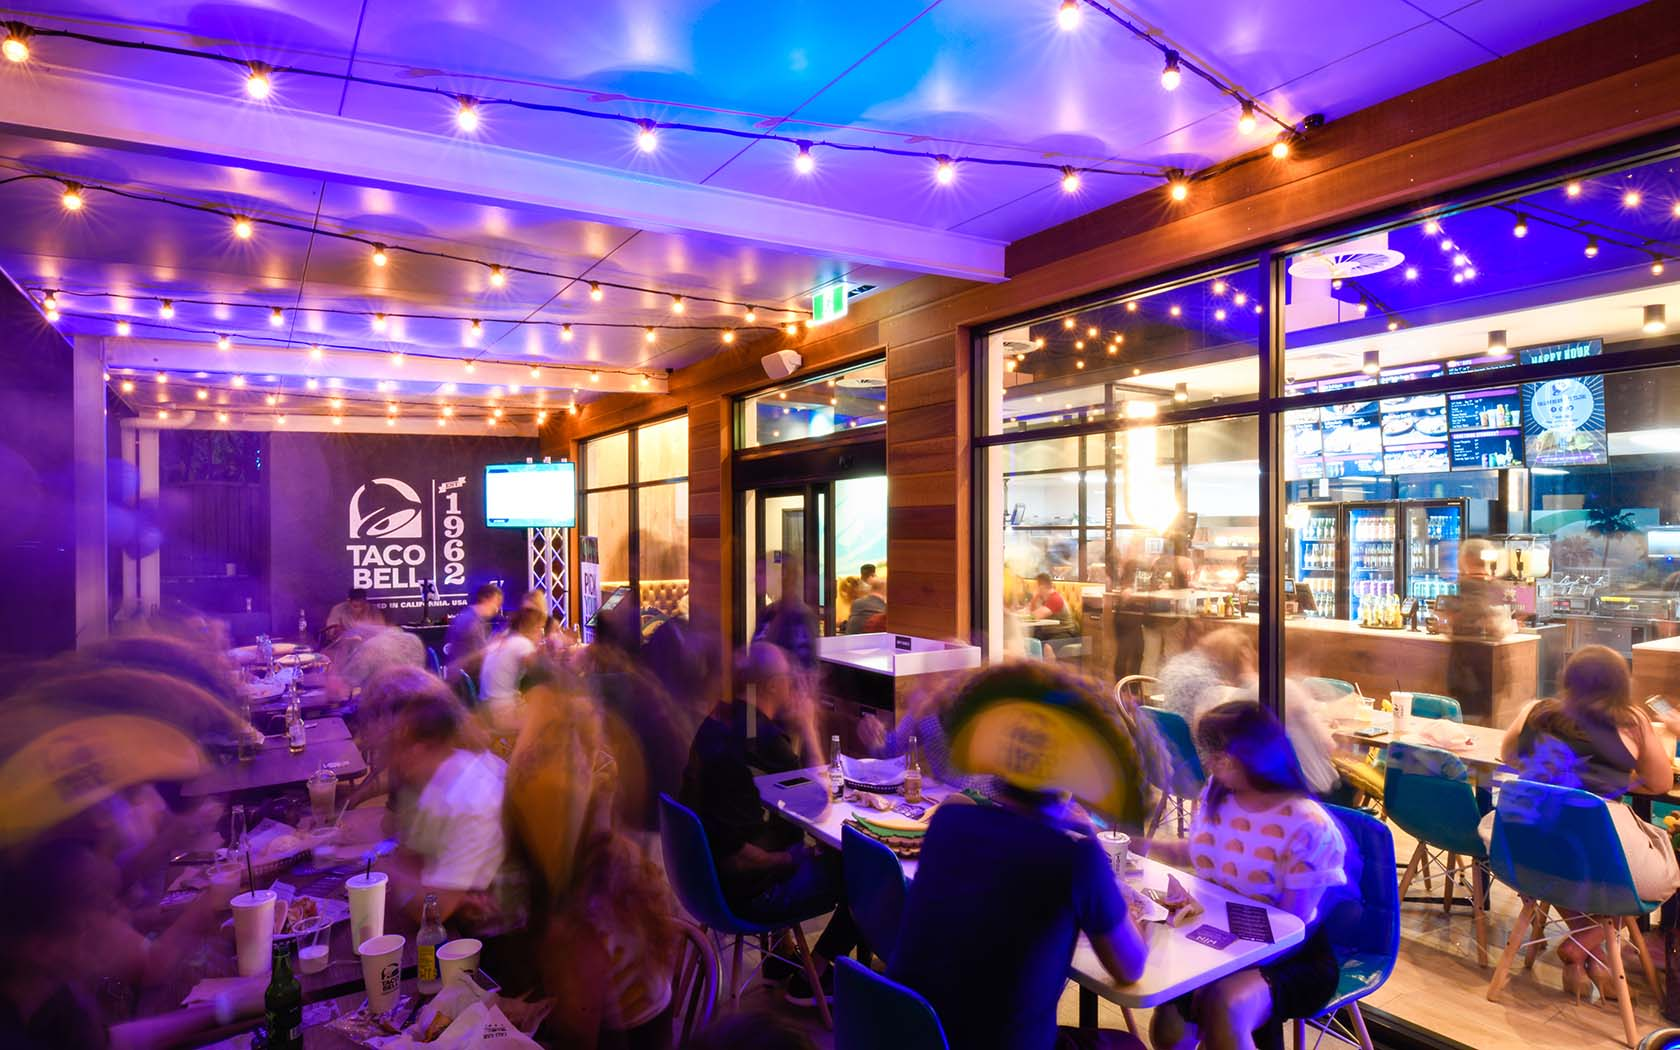 Australia S First Taco Bell In Over A Decade To Open In